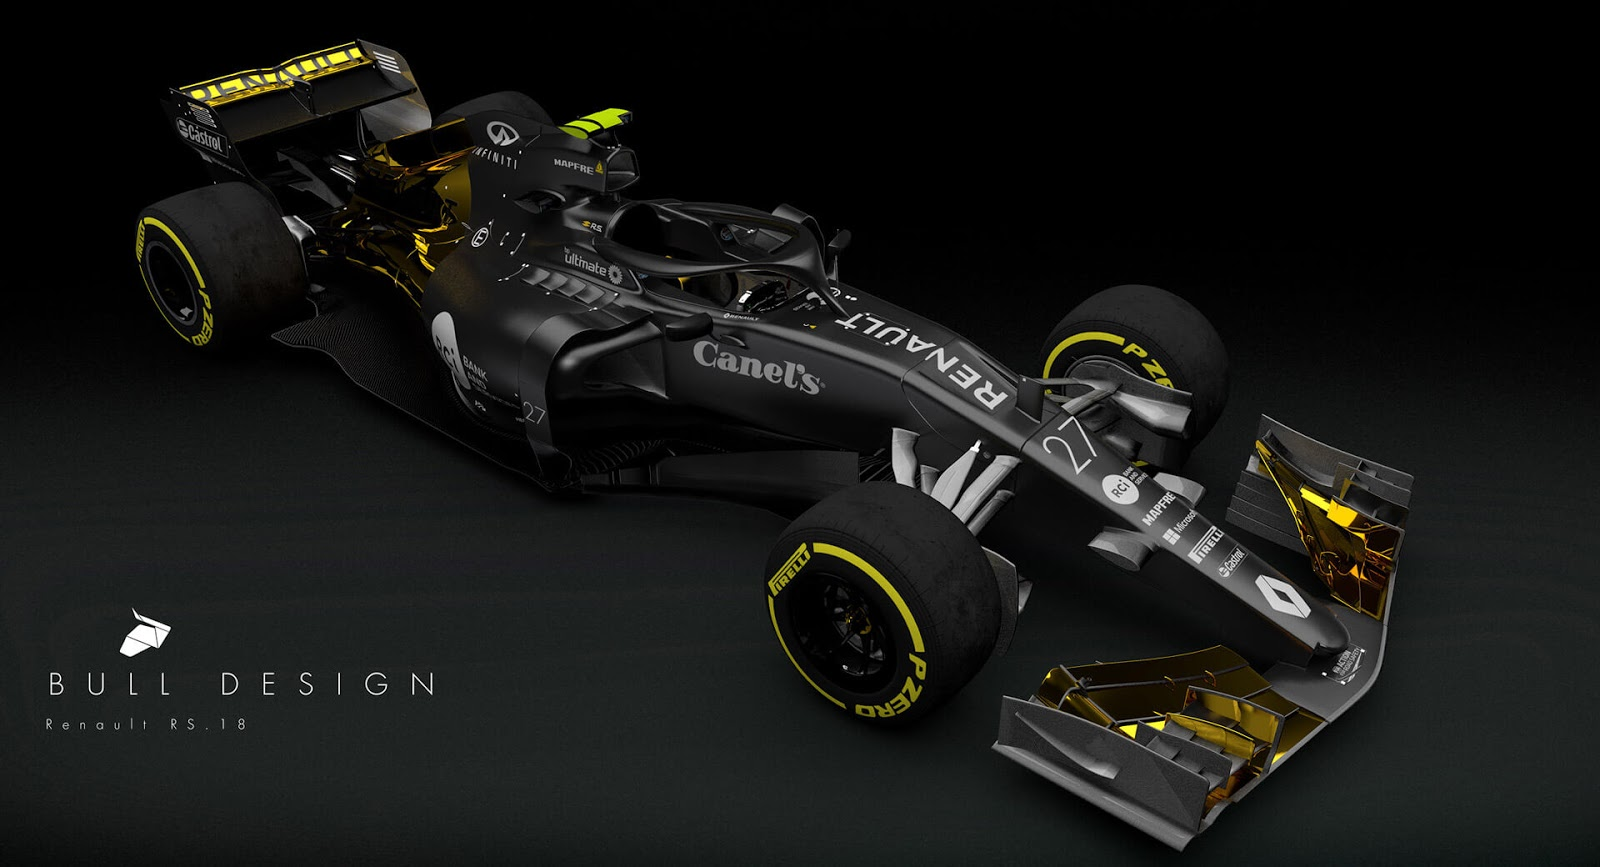 Delicieux Remember What We Said About The Shame Of Renault Ditching The Lotus/JPS  Livery? Yeah, We Take It Back. This Looks Cooler. Itu0027s Sean Bullu0027s Latest  Project, ...